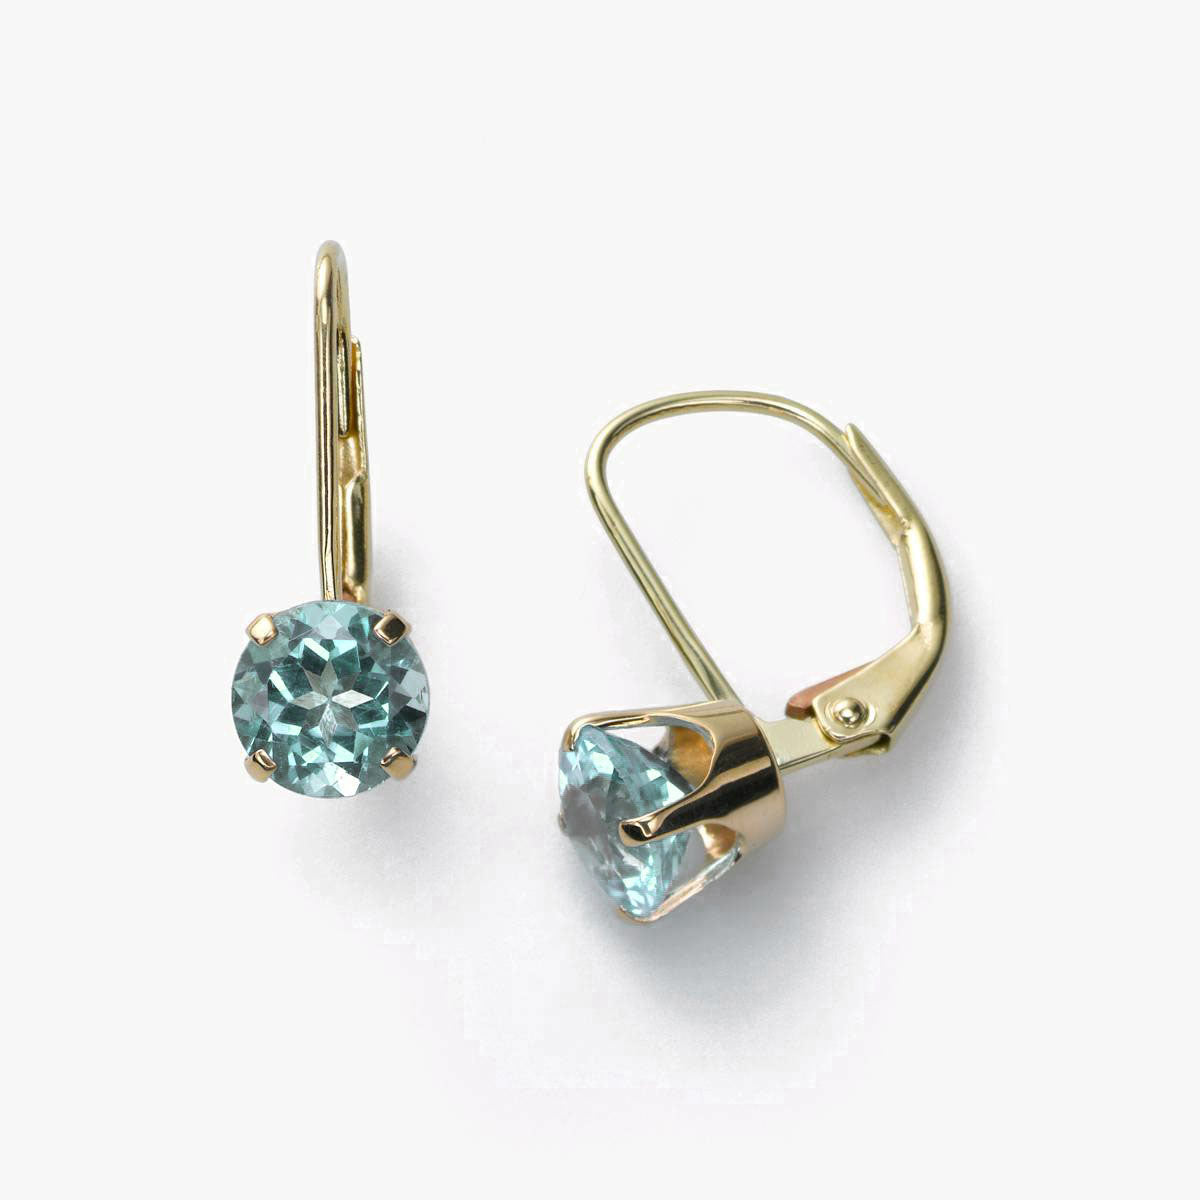 Blue Topaz Leverback Earring, 14K Yellow Gold